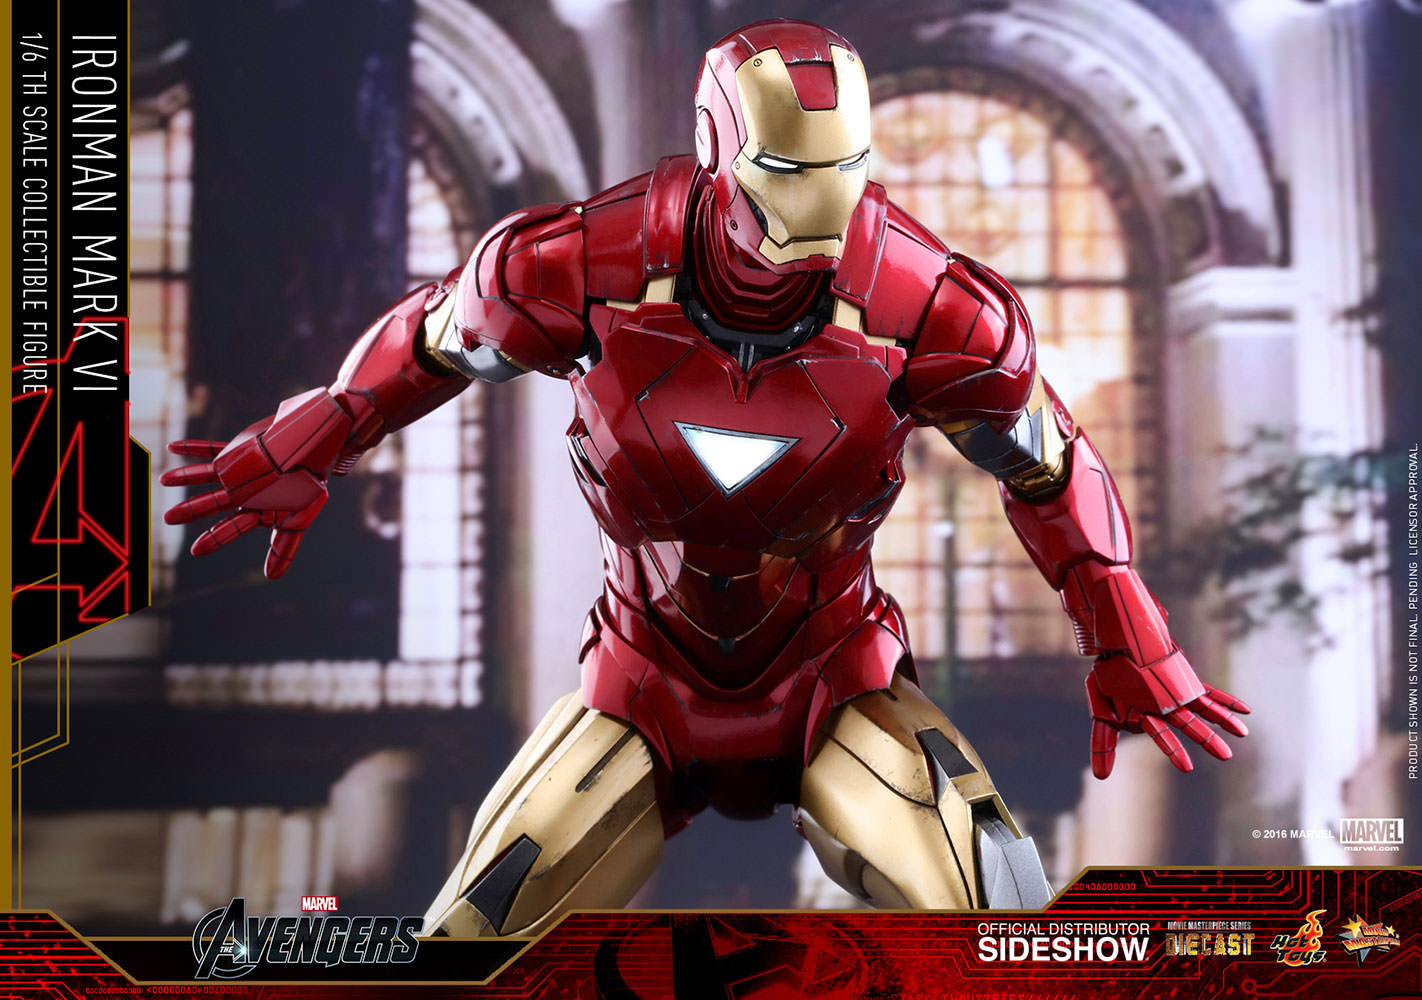 Die Cast War Machine Hot Toys Iron Man 2 Figure Shoulder Mounted Missile Launcher Jpg